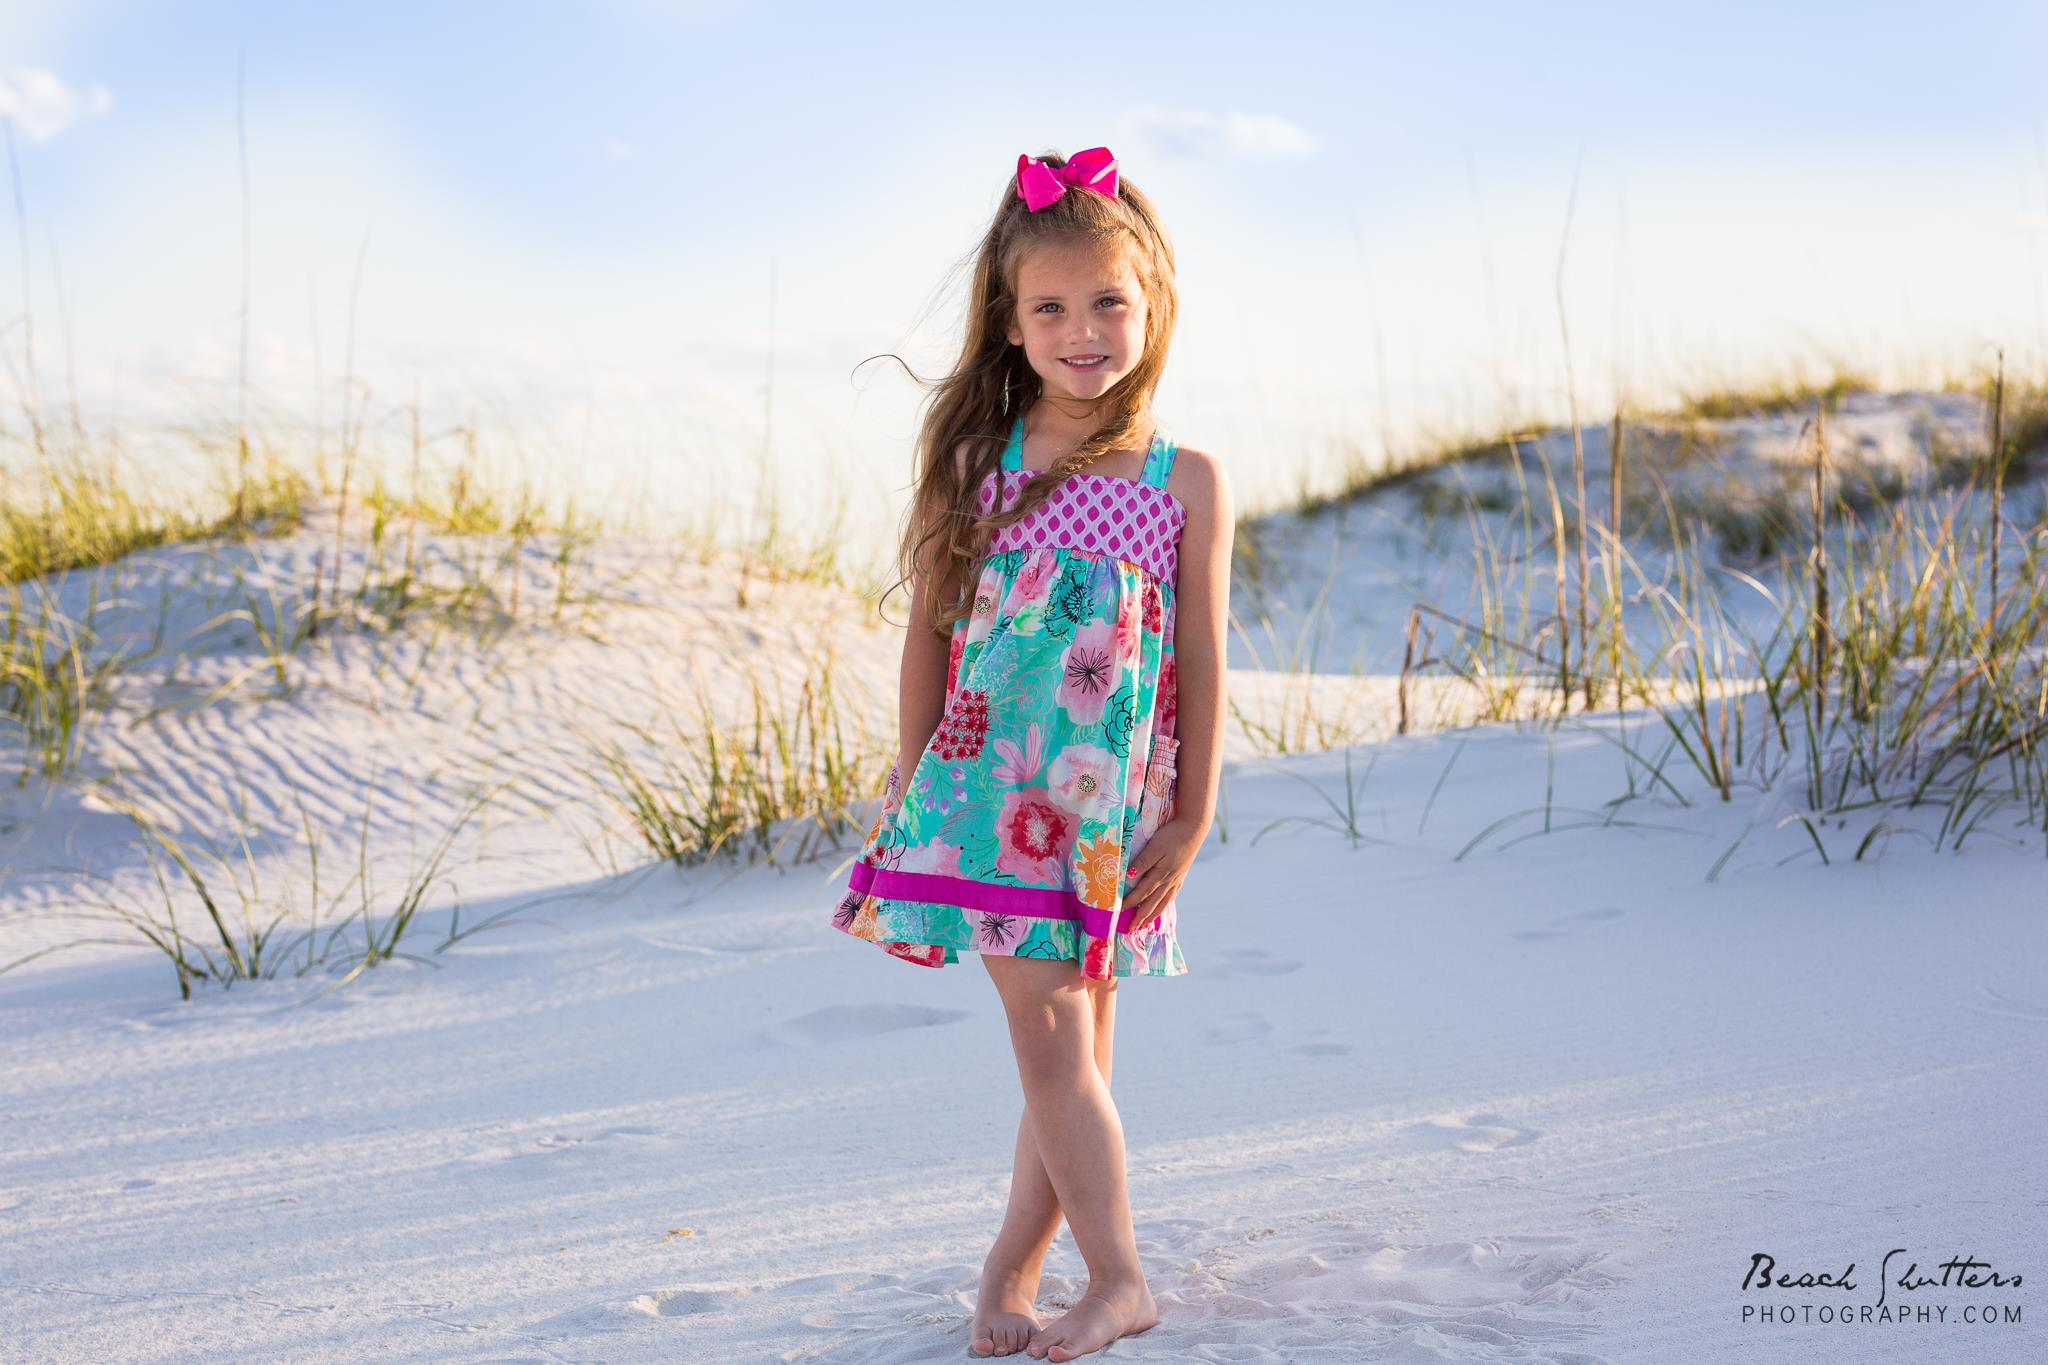 Gulf Shores photographers outfit suggestions